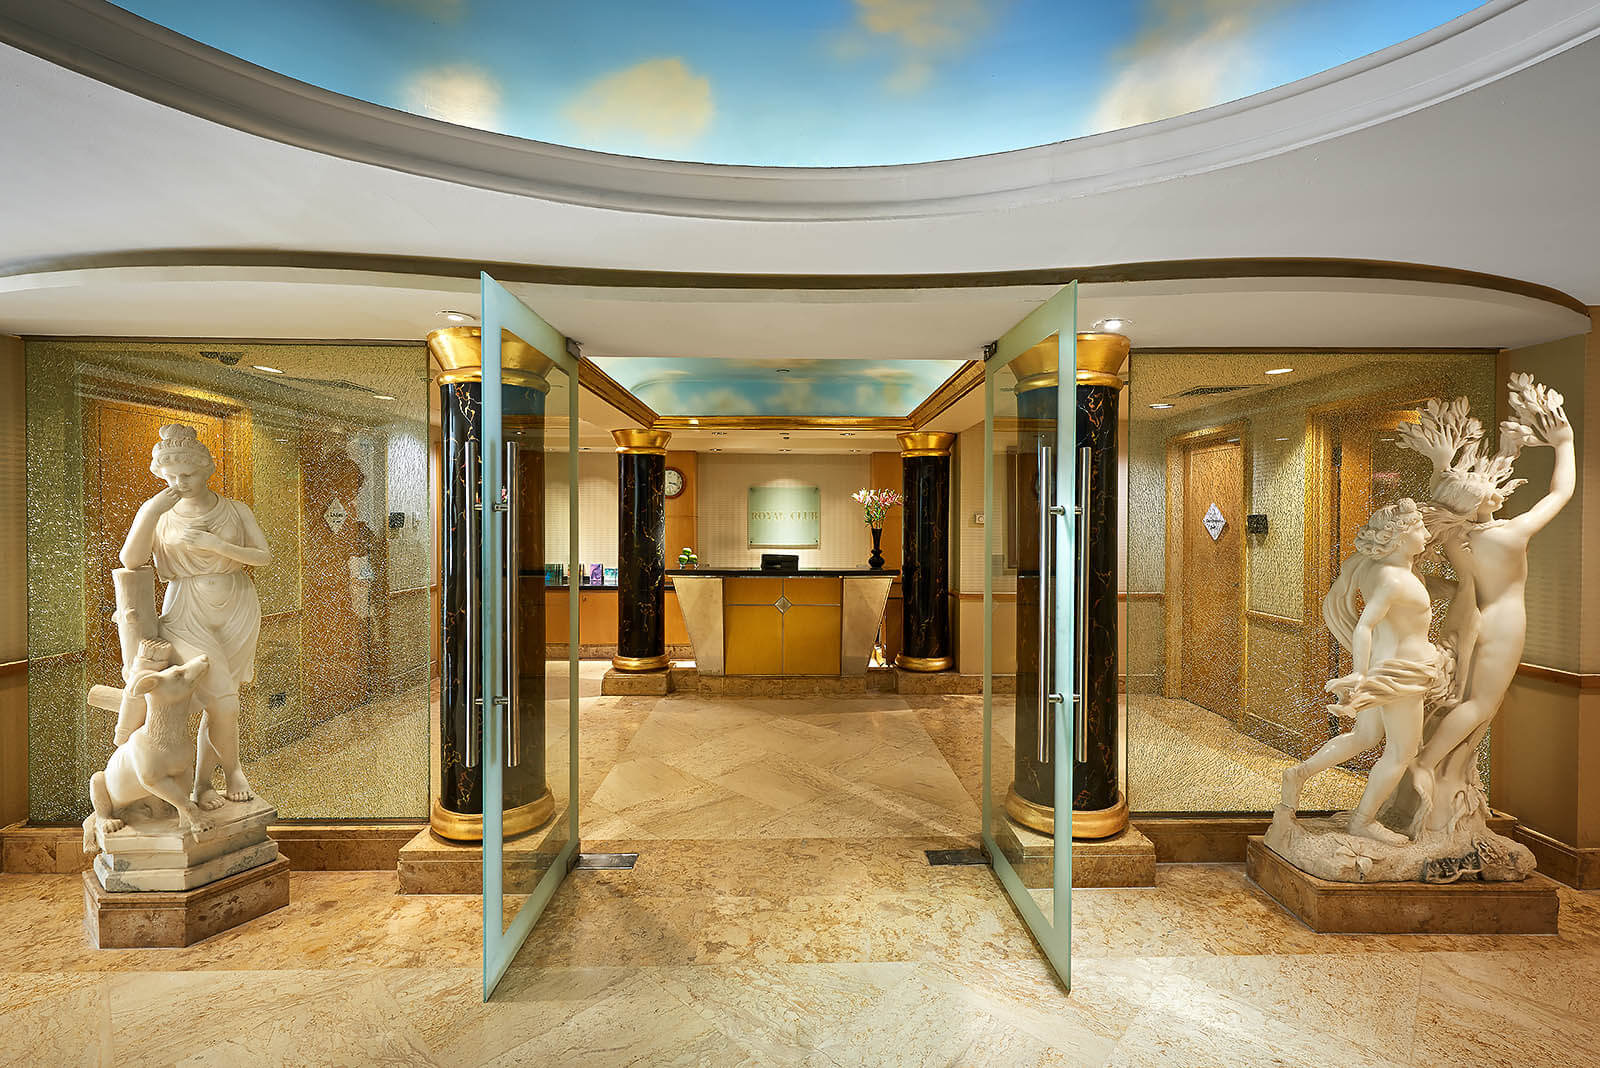 Royal Health Club entrance - Grand Nile Tower Hotel - Mohamed Abdel-Hady Photography